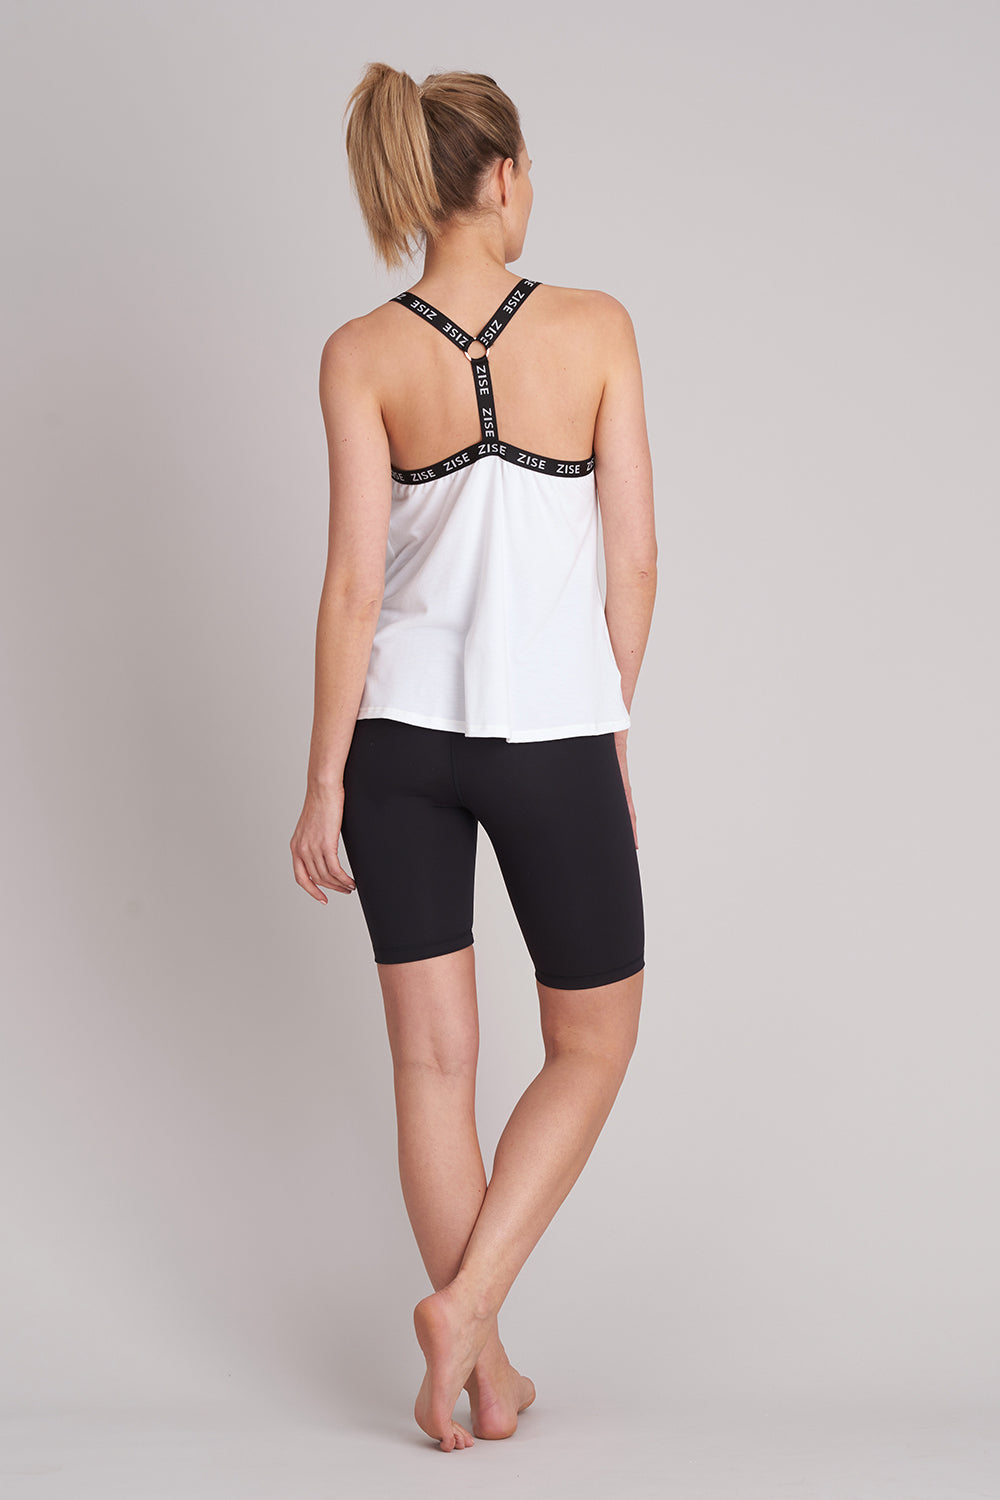 Zise Emmy T-Back Vest Top